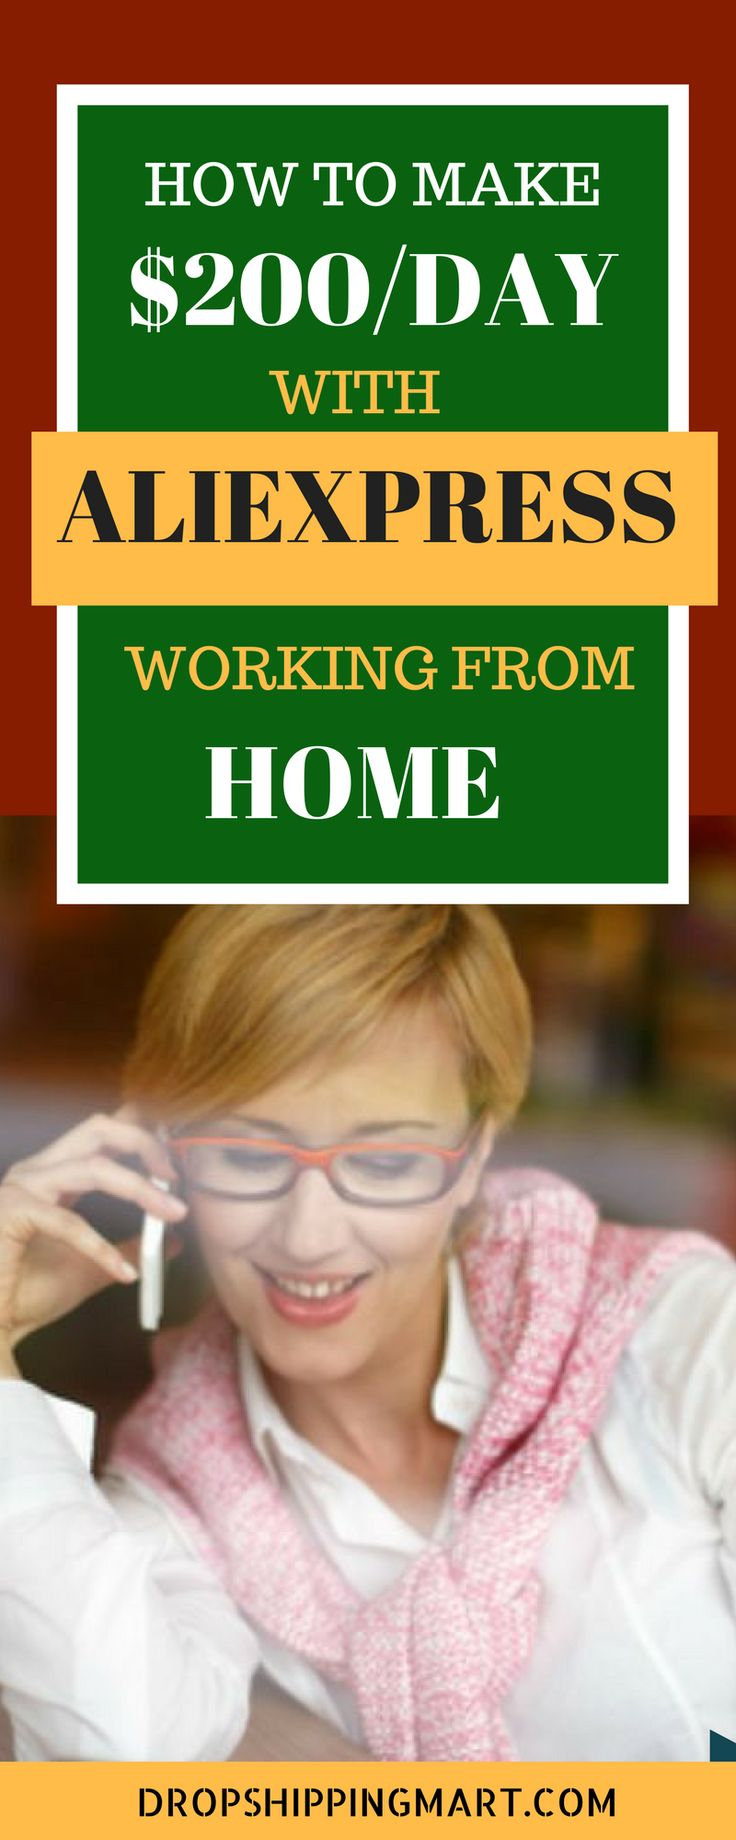 Earn Money Online How to make money working from home? Looking for work from home jobs? Online jobs are a great way to earn money without leaving your home. With dropshipping business as a home-based side hustles you can start now. Here's Your Opportunity To CLONE My Entire Proven Internet Business System Today!